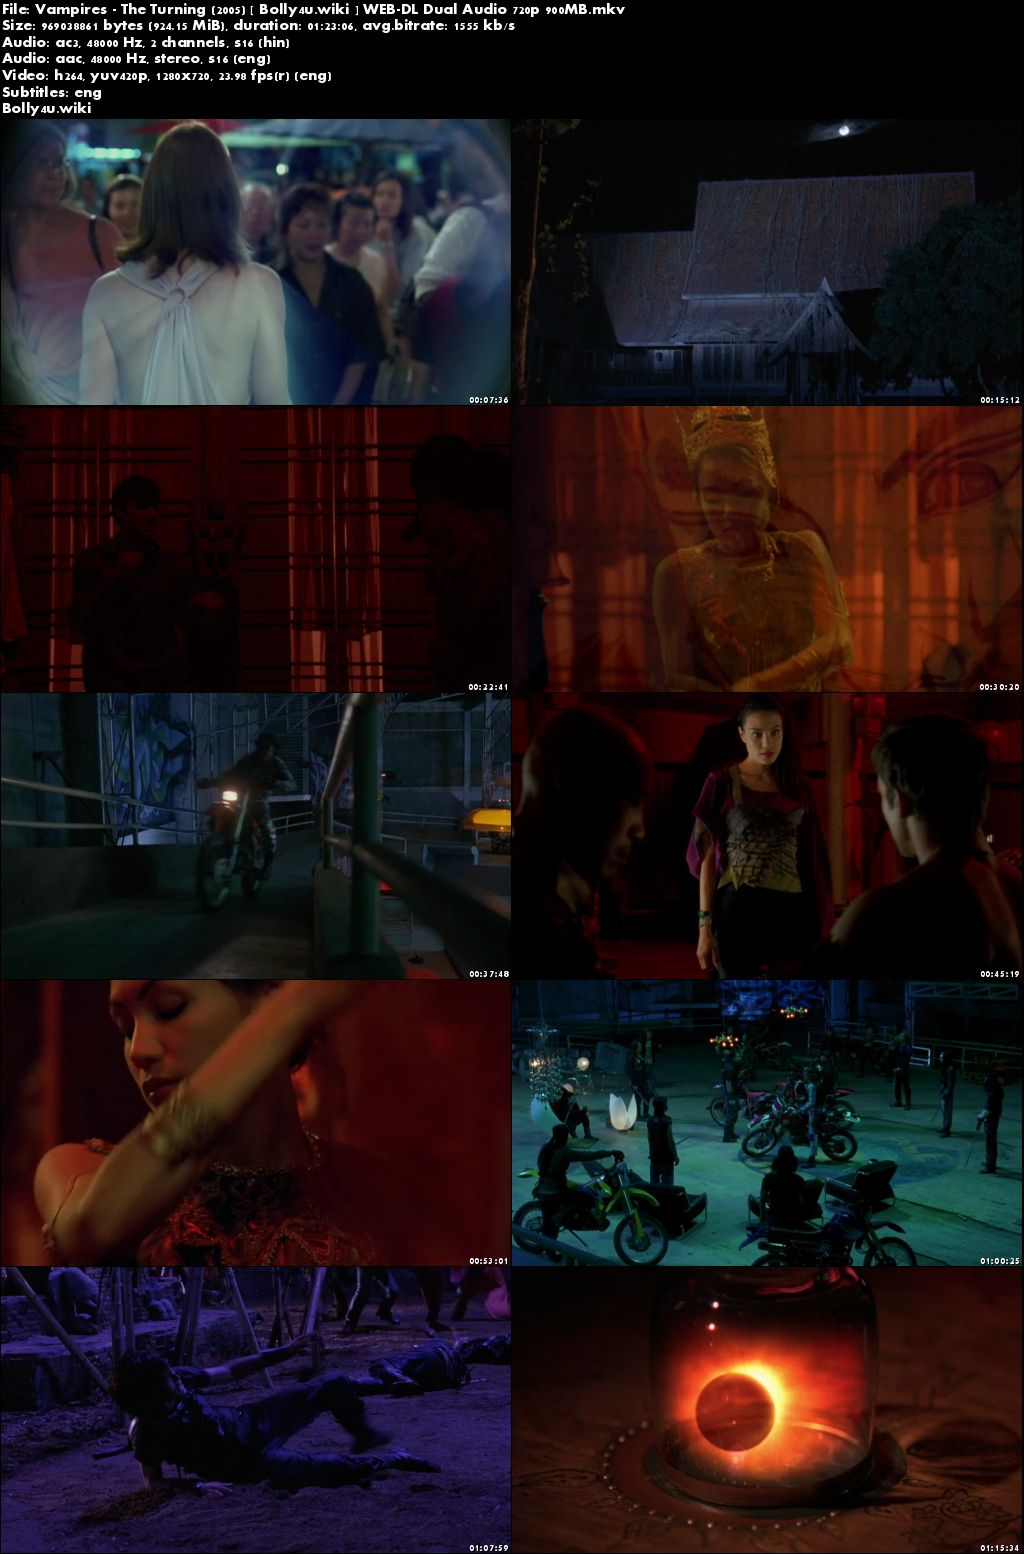 Vampires The Turning 2005 WEB-DL 900Mb Hindi Dual Audio 720p Download